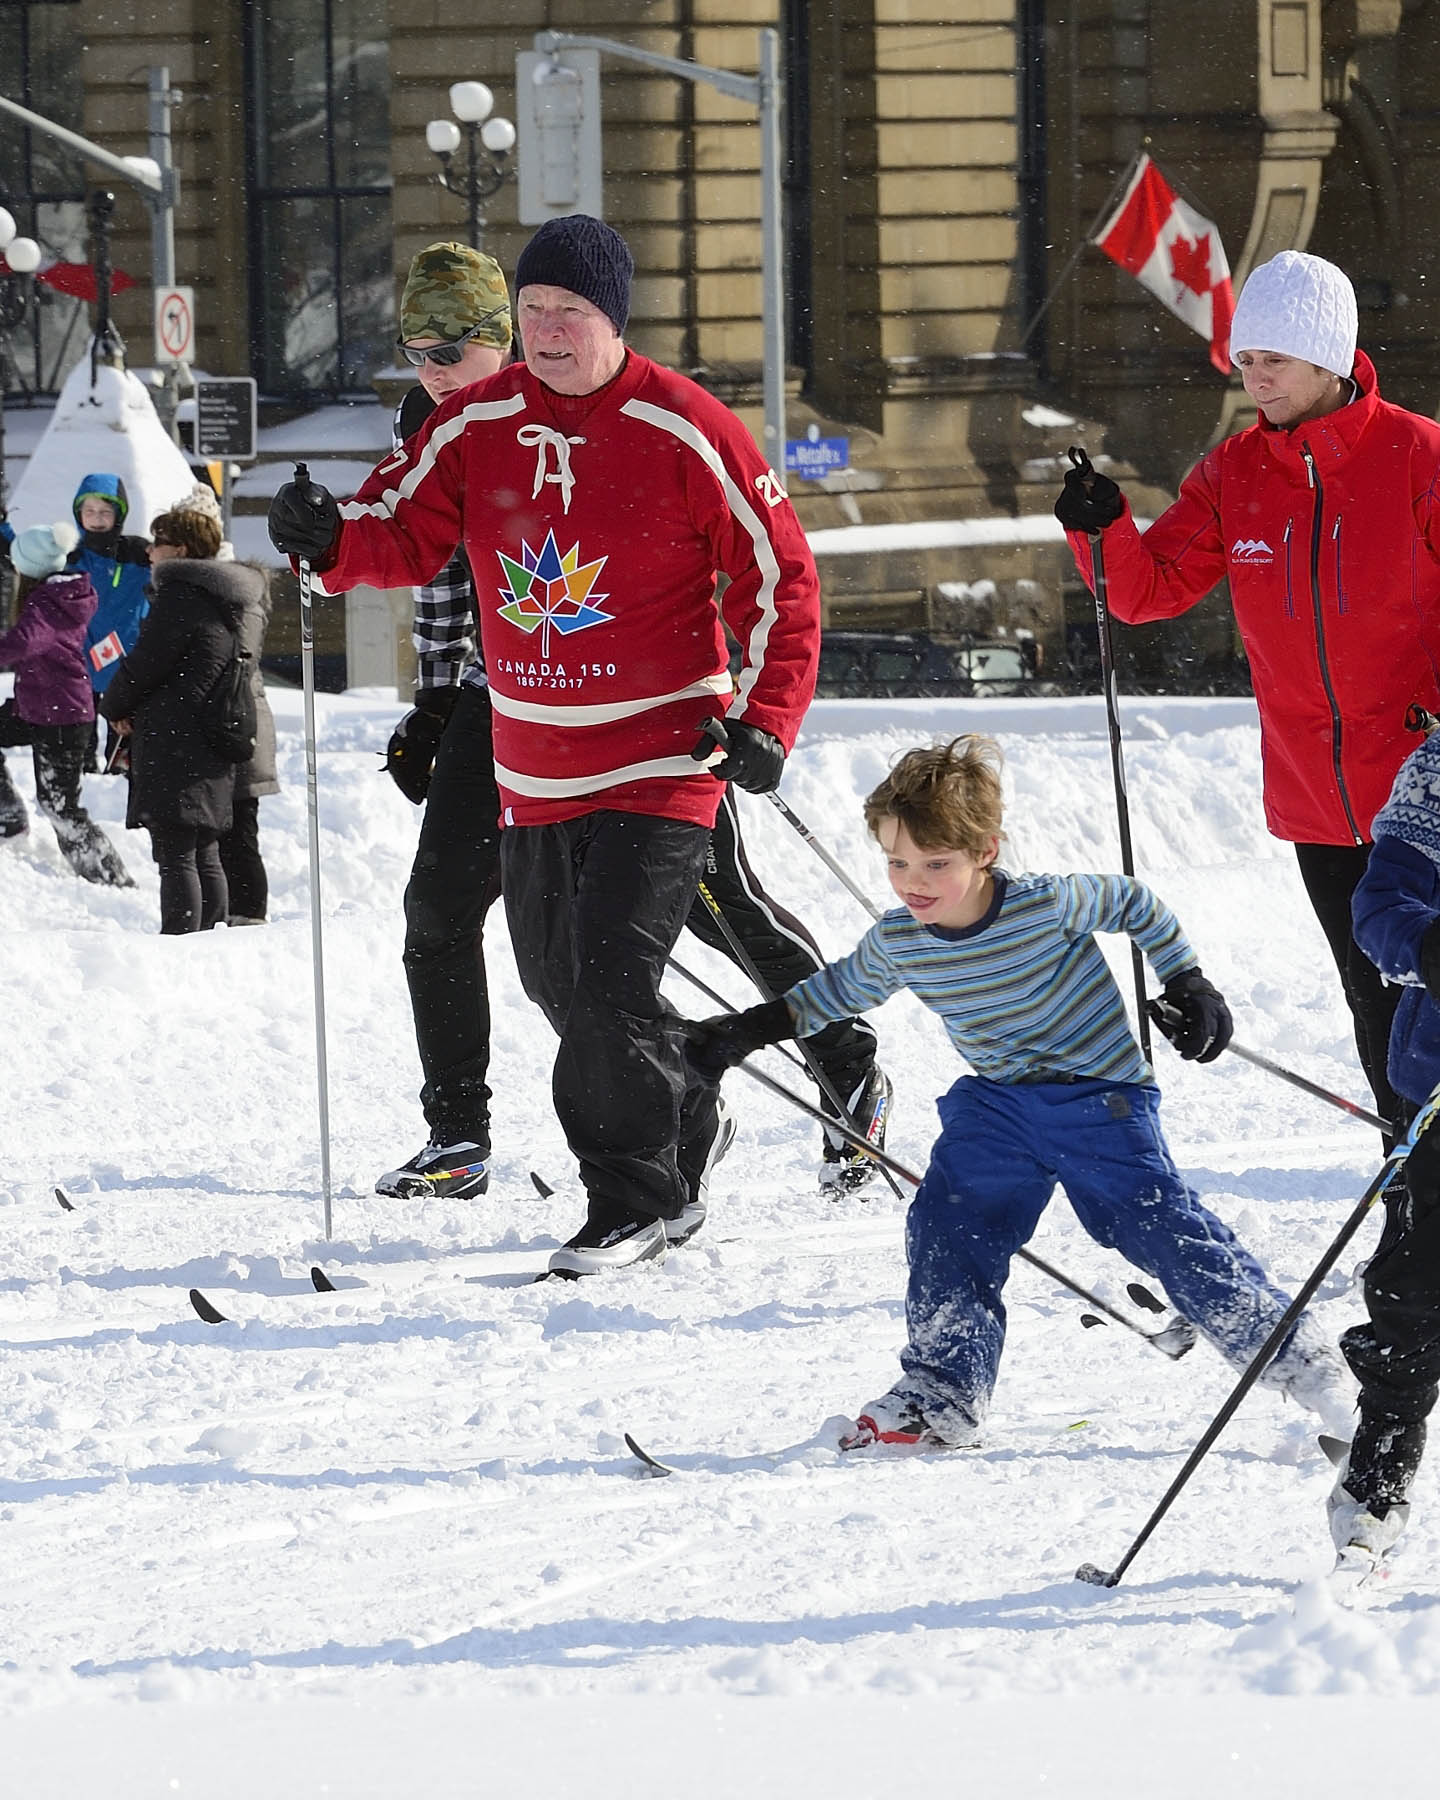 This event was created to promote National Health and Fitness Day and to encourage Canadians to embrace winter.